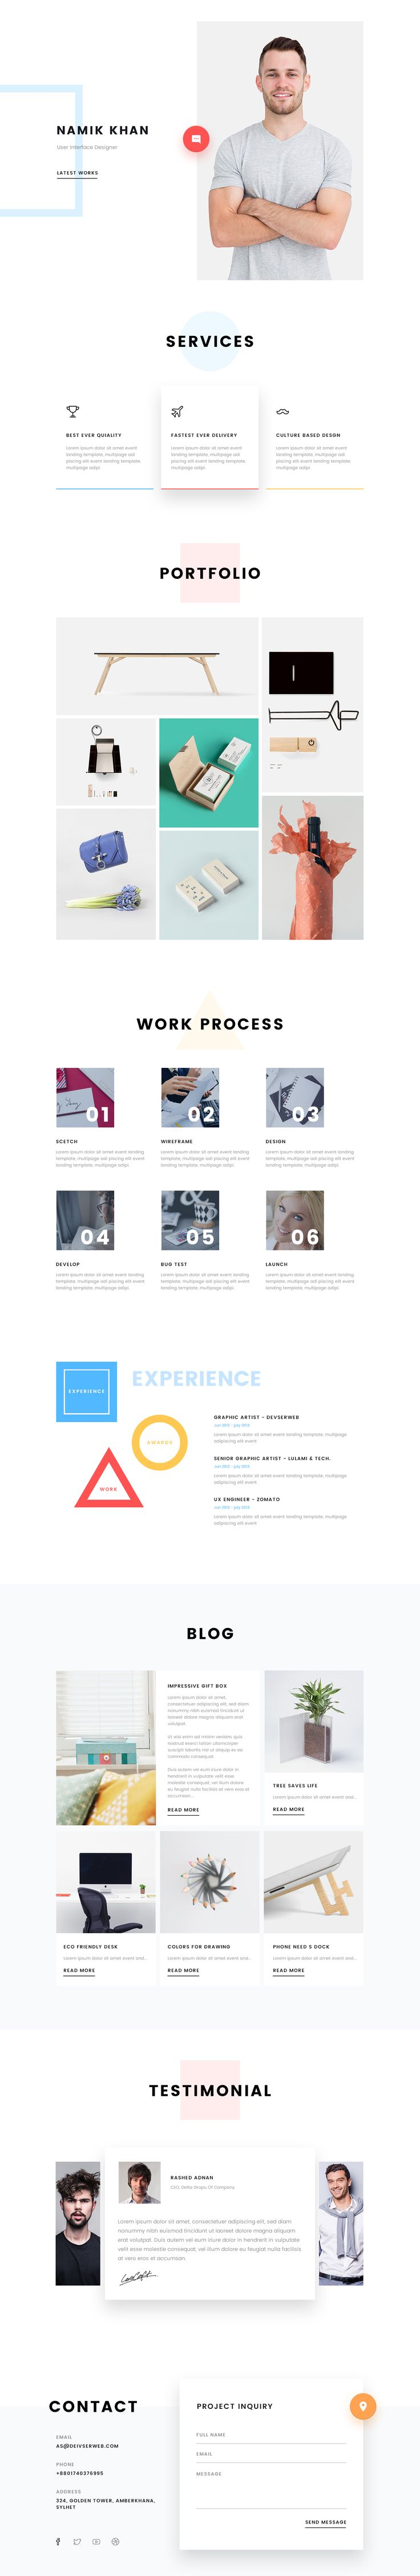 Dribbble - personal_website_cv_resume.jpg by Ali Sayed